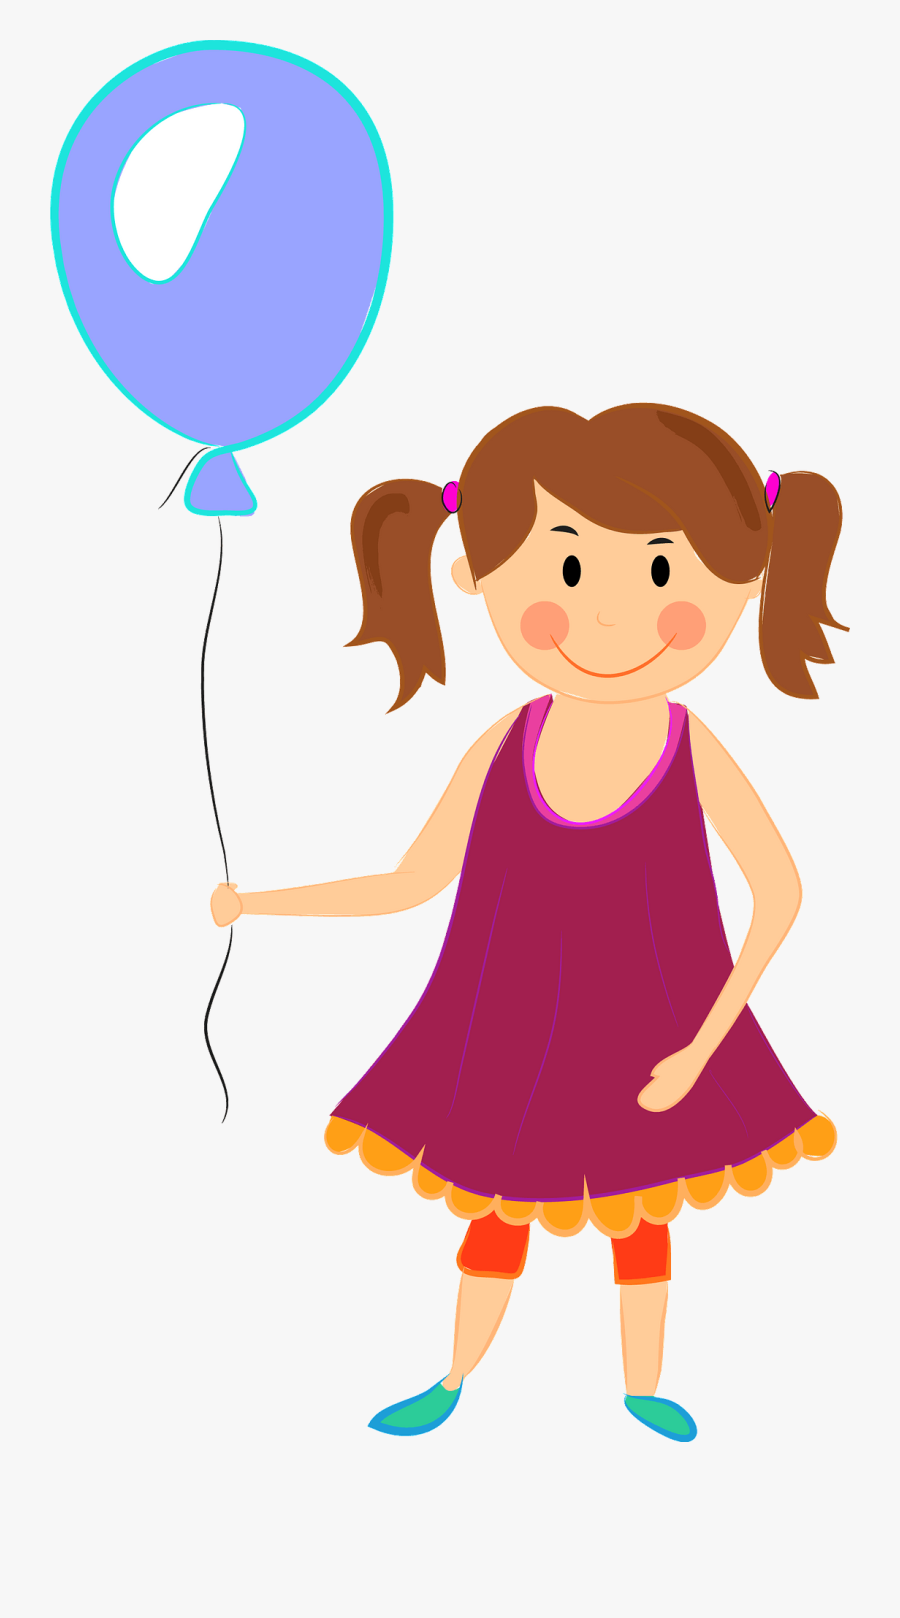 Happy Sisters Day Gif - Happy Children Day Gif, Transparent Clipart